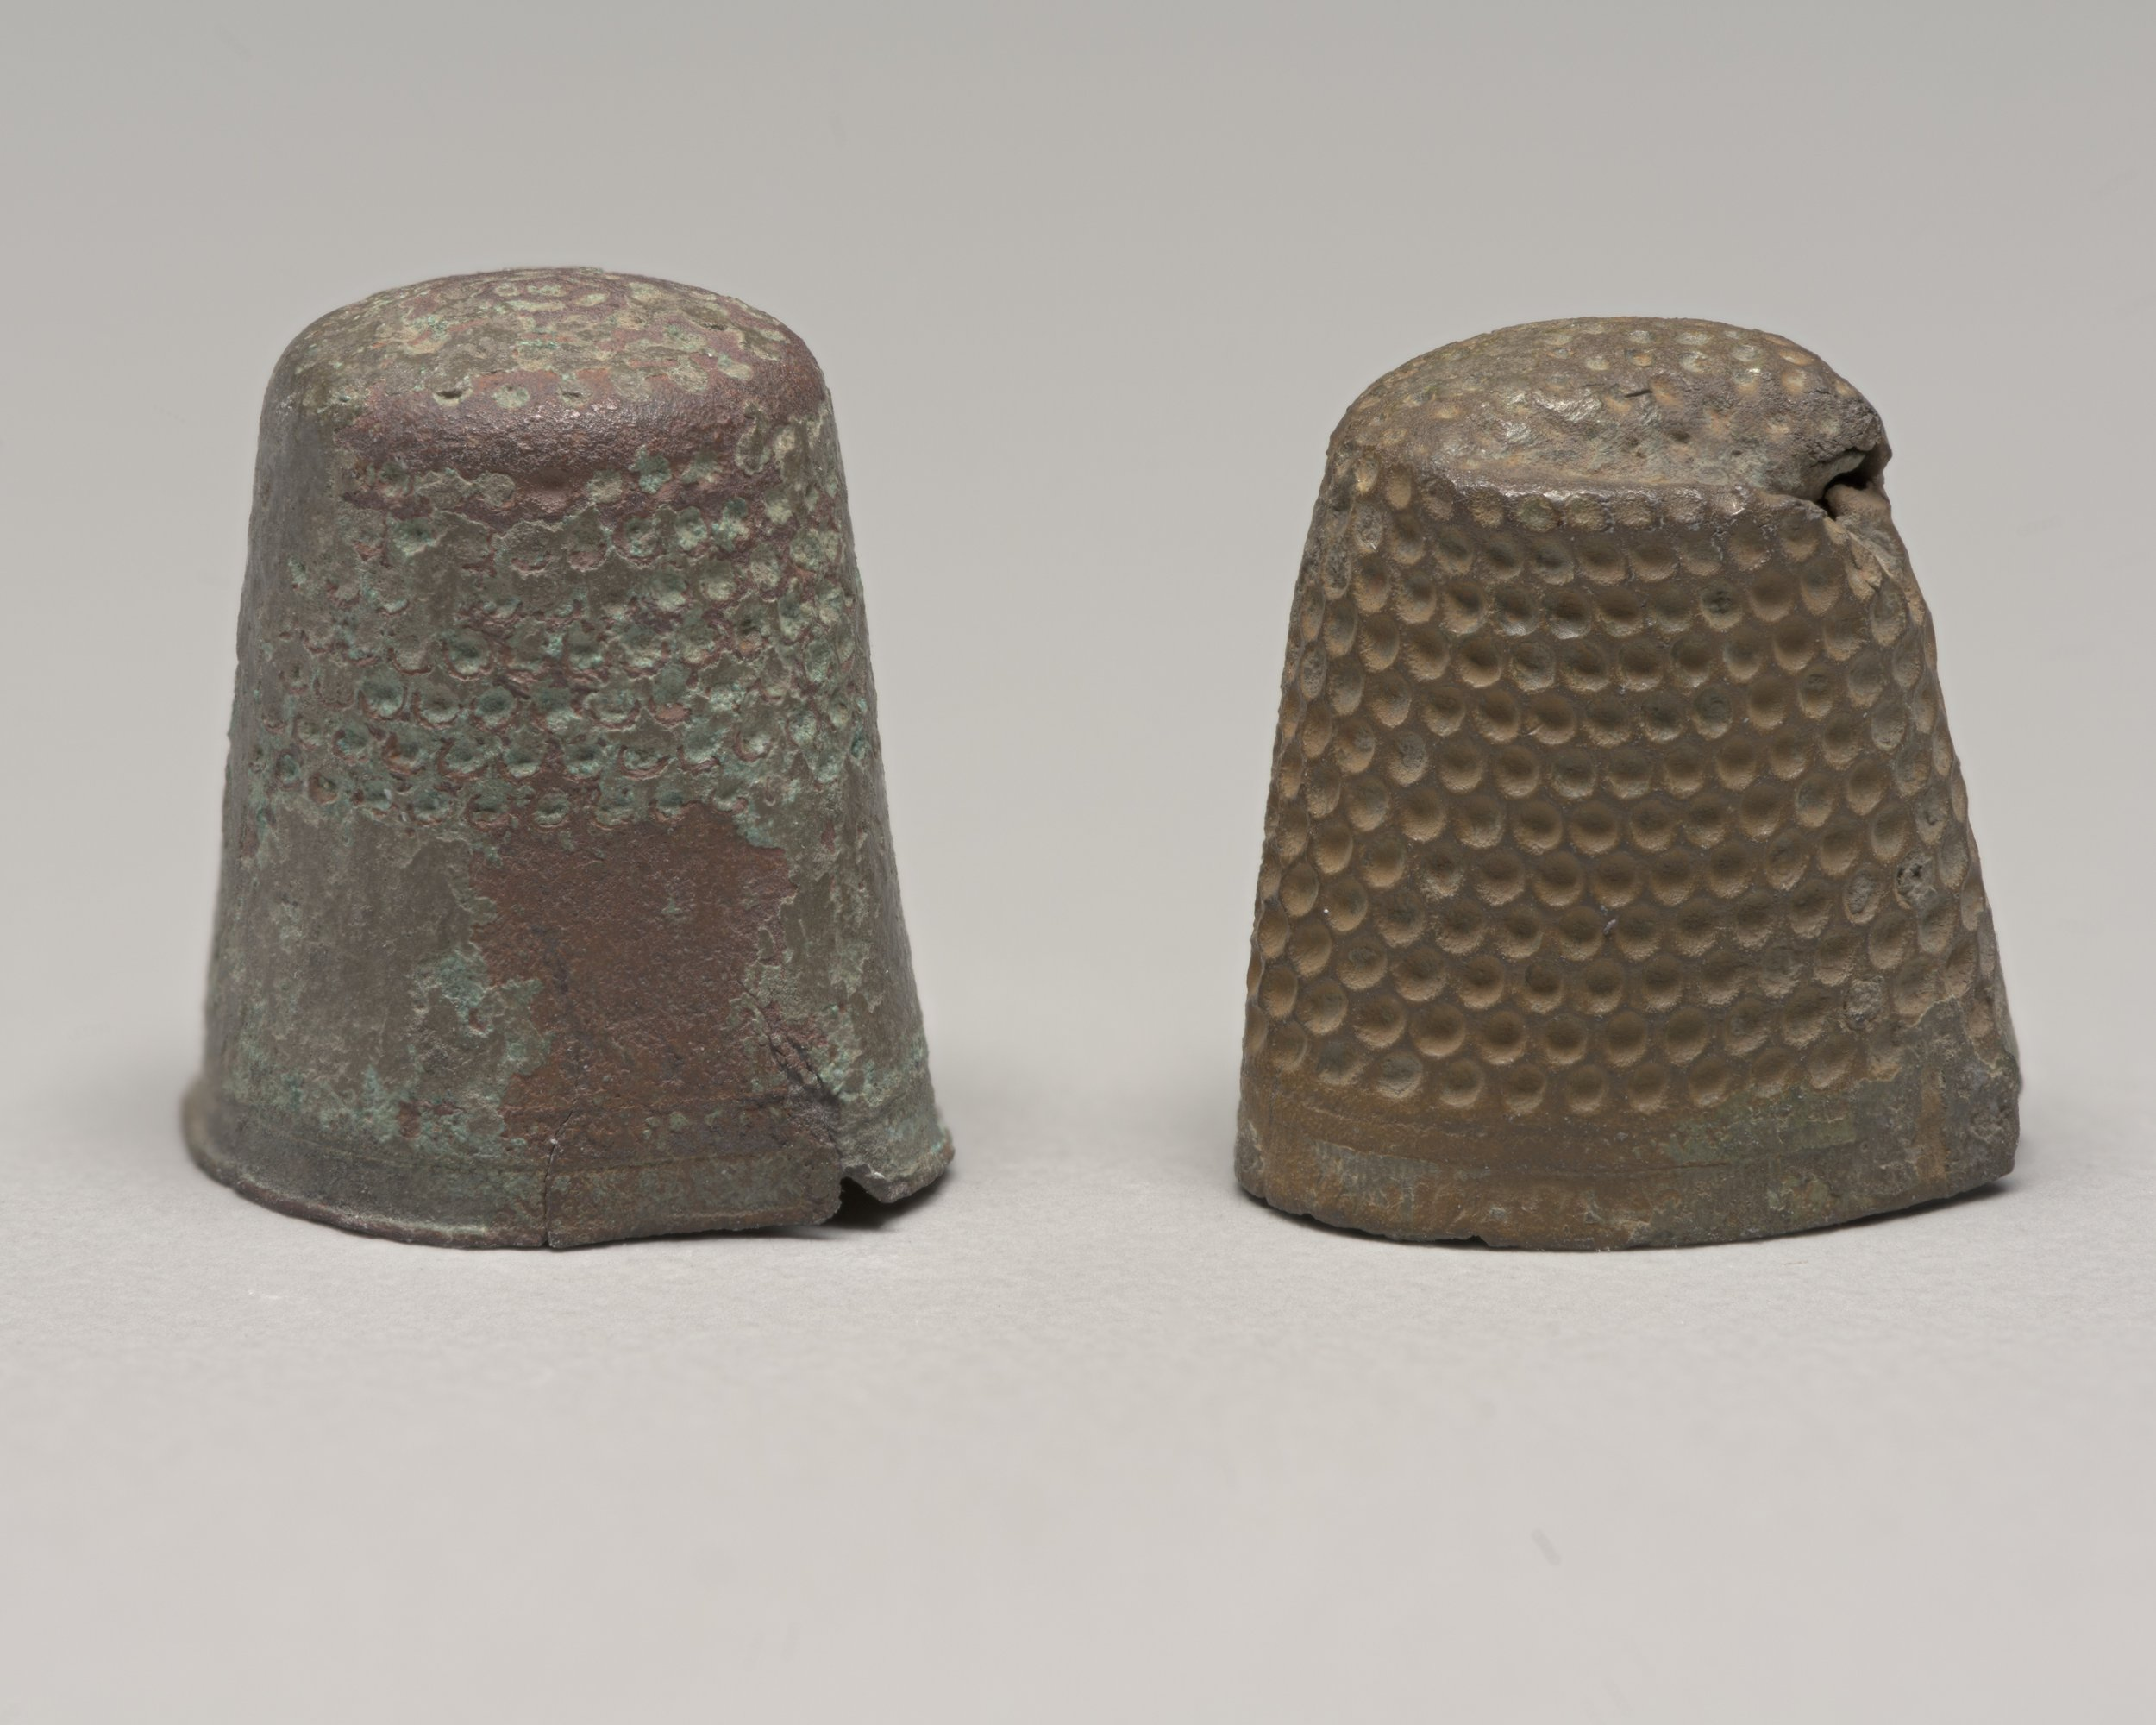 Thimbles from the Canville Trading Post, 14NO396 - 1